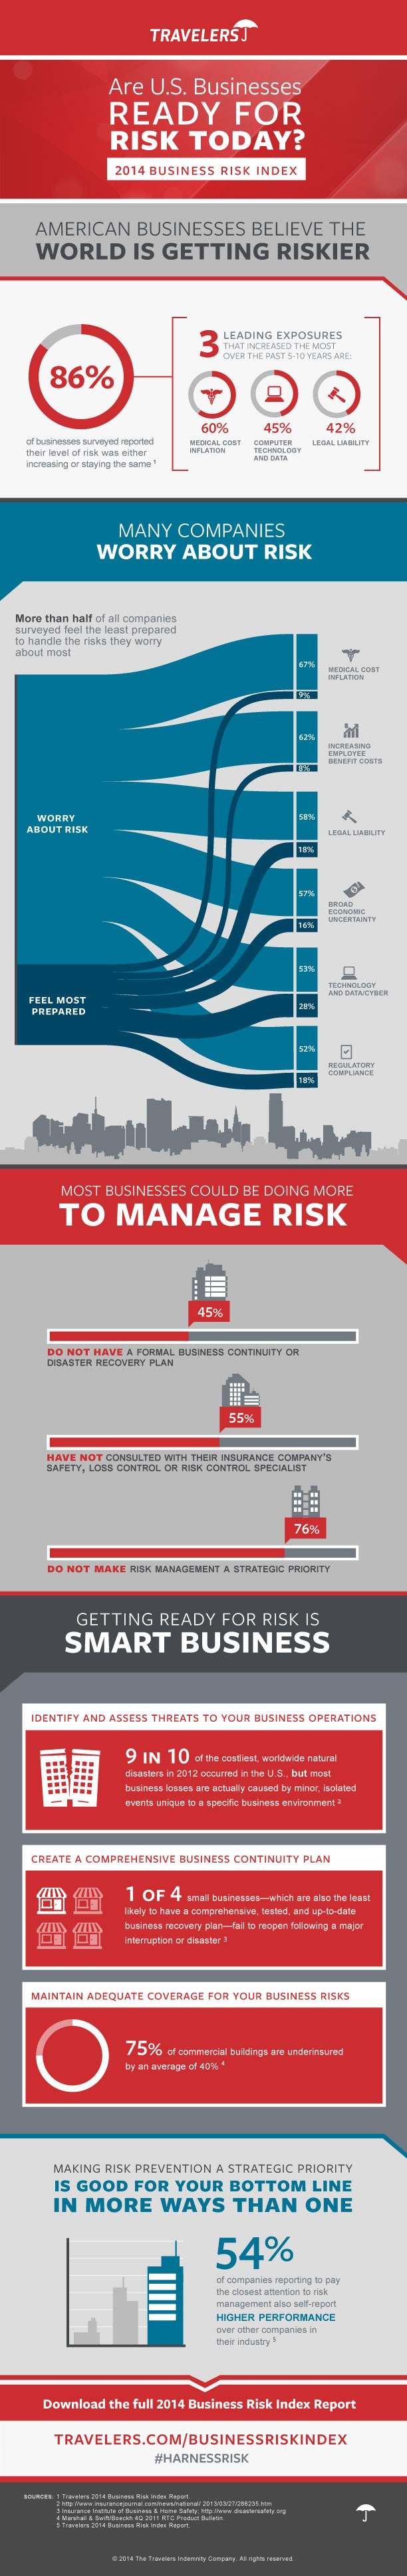 2014 Travelers Business Risk Index infographic